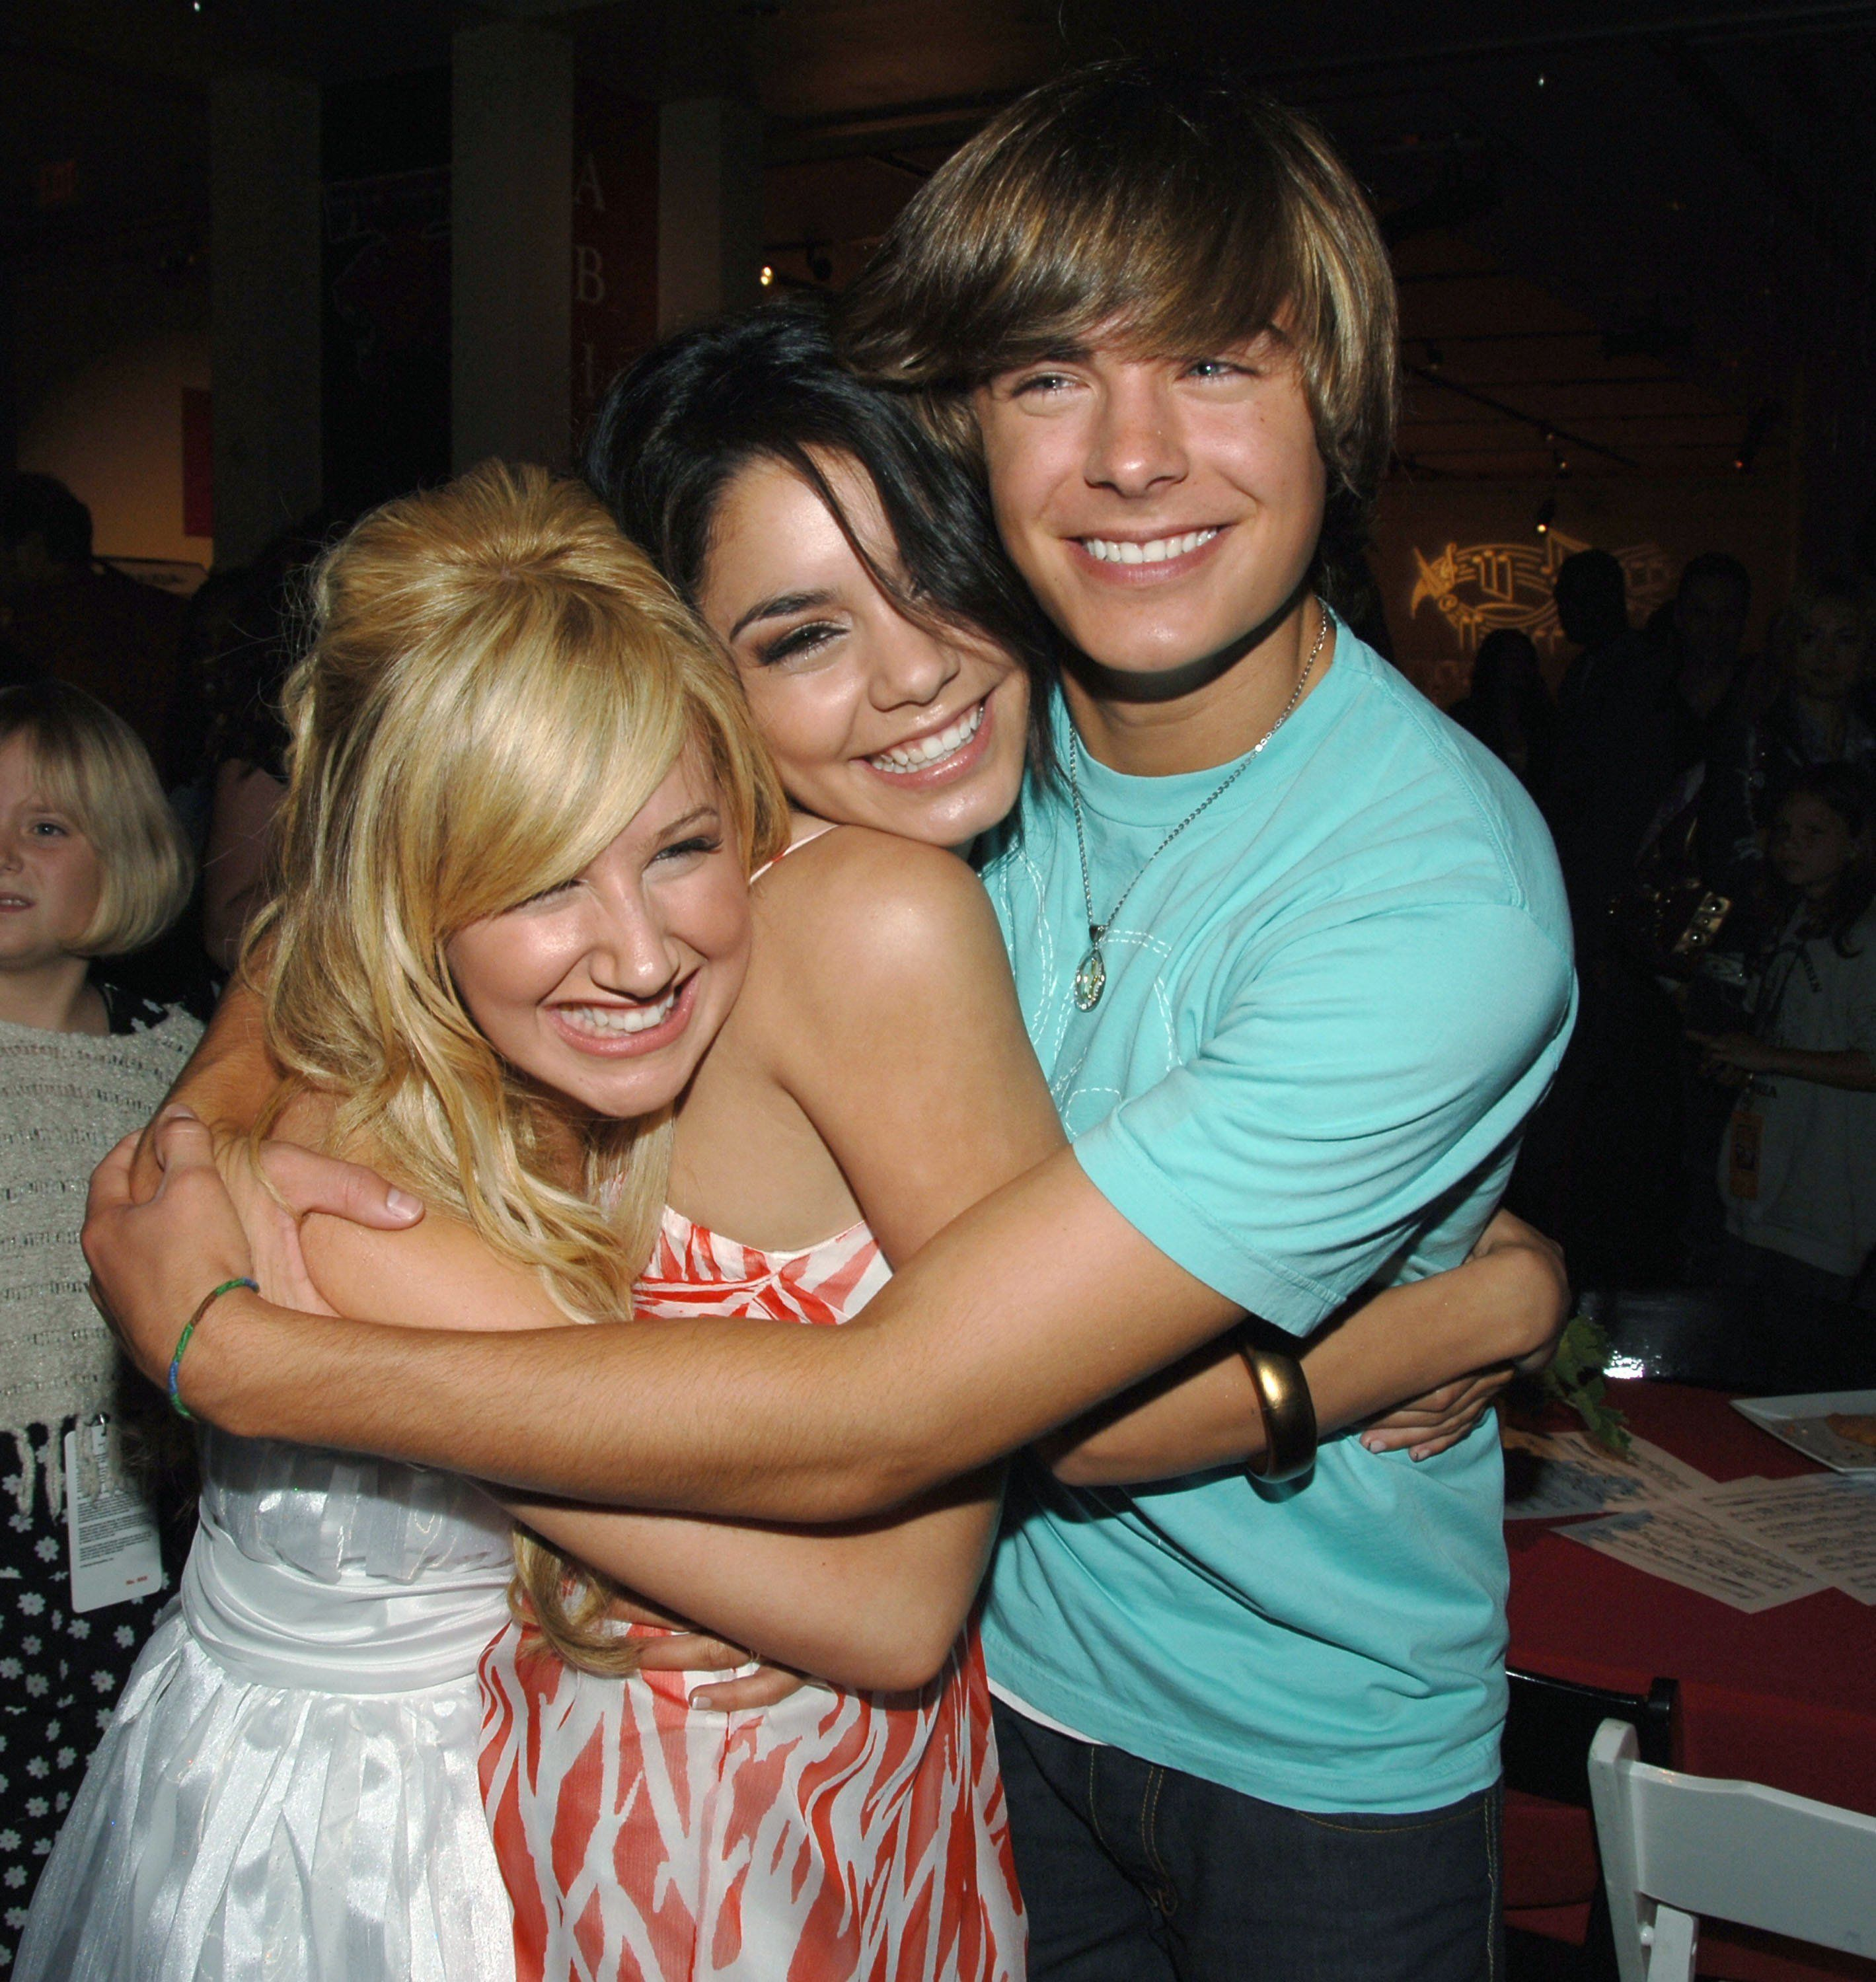 HOLLYWOOD - MAY 13:  (L-R)  Actors Ashley Tisdale, Vanessa Anne Hudgens and Zac Efron attend the after party for the DVD launch of  'High School Musical'  on May 13, 2006 in Hollywood, California.  (Photo by Stephen Shugerman/Getty Images)